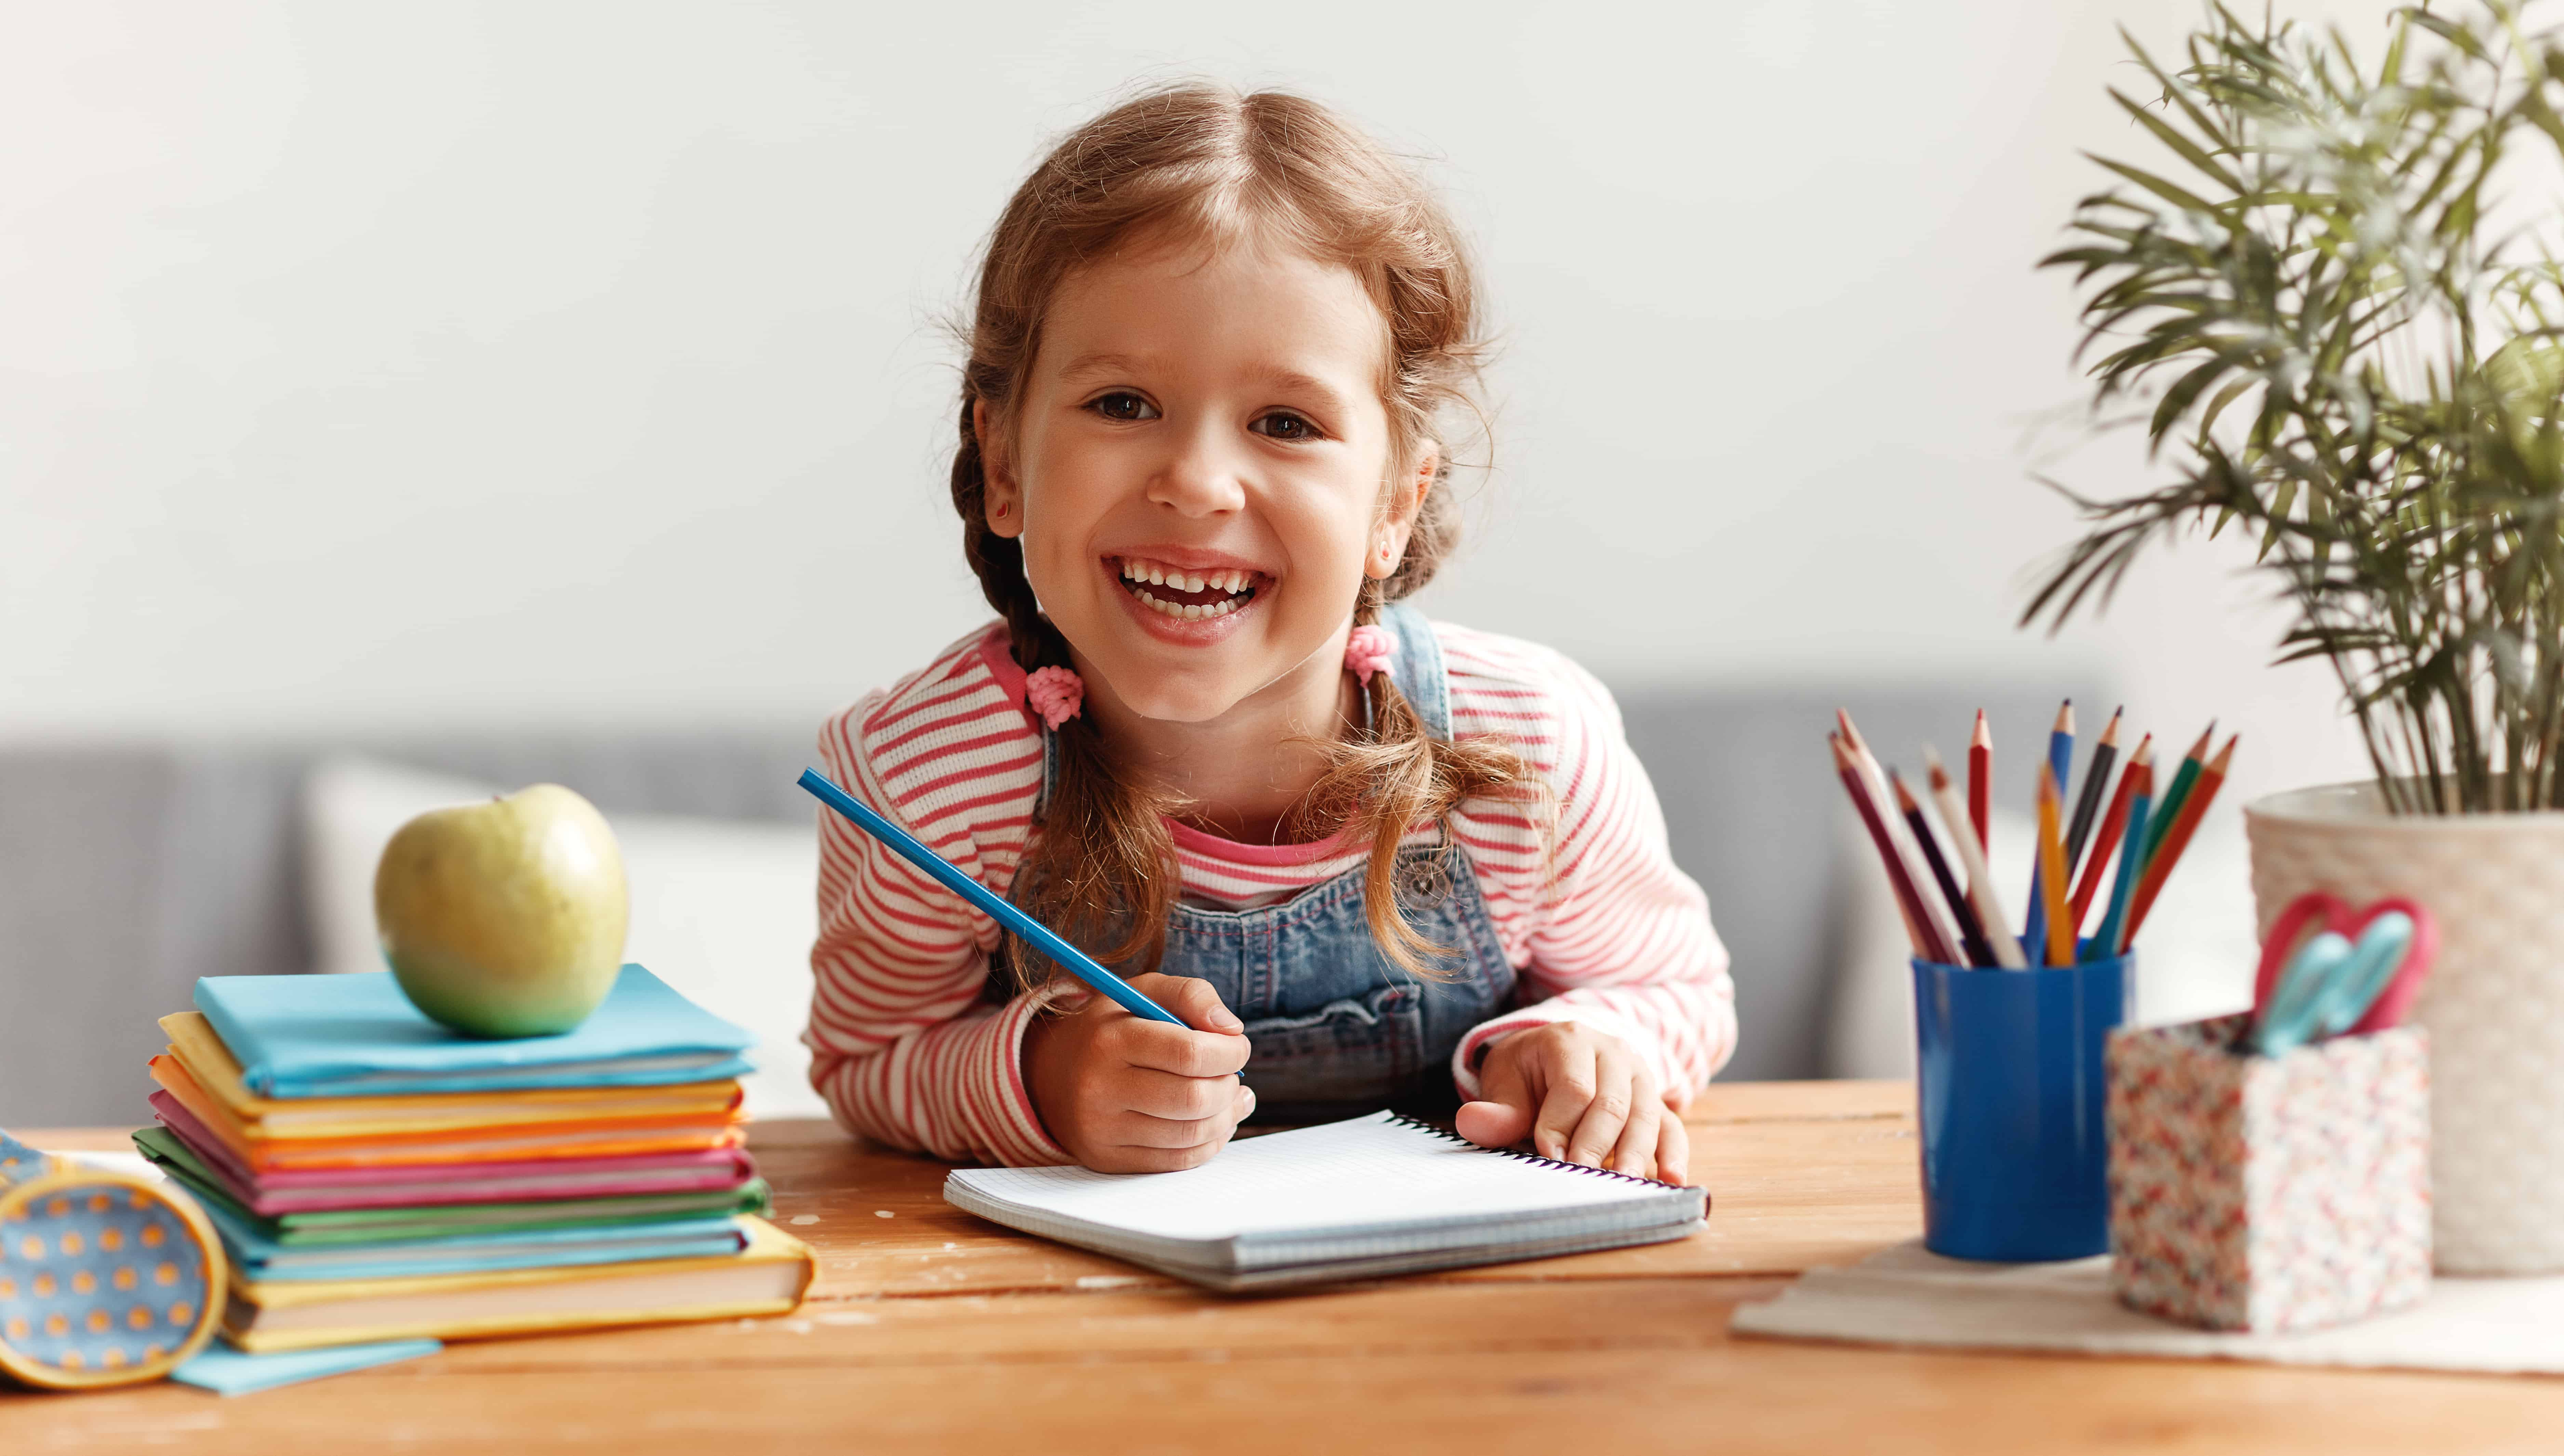 little girl smiling and writing in a notebook